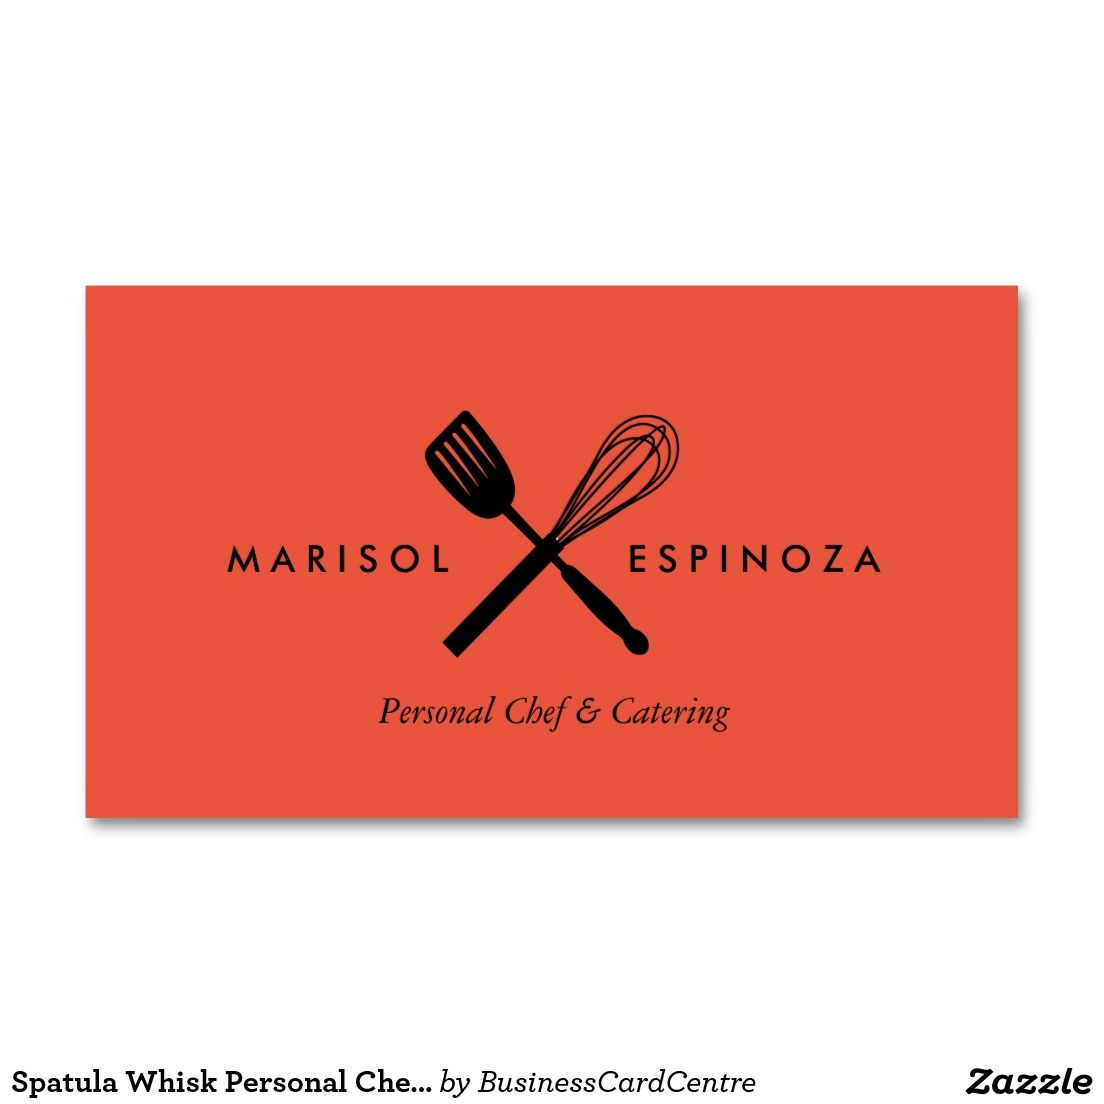 Spatula Whisk Personal Chef Caterer Business Card Zazzle Com Personal Chef Catering Business Cards